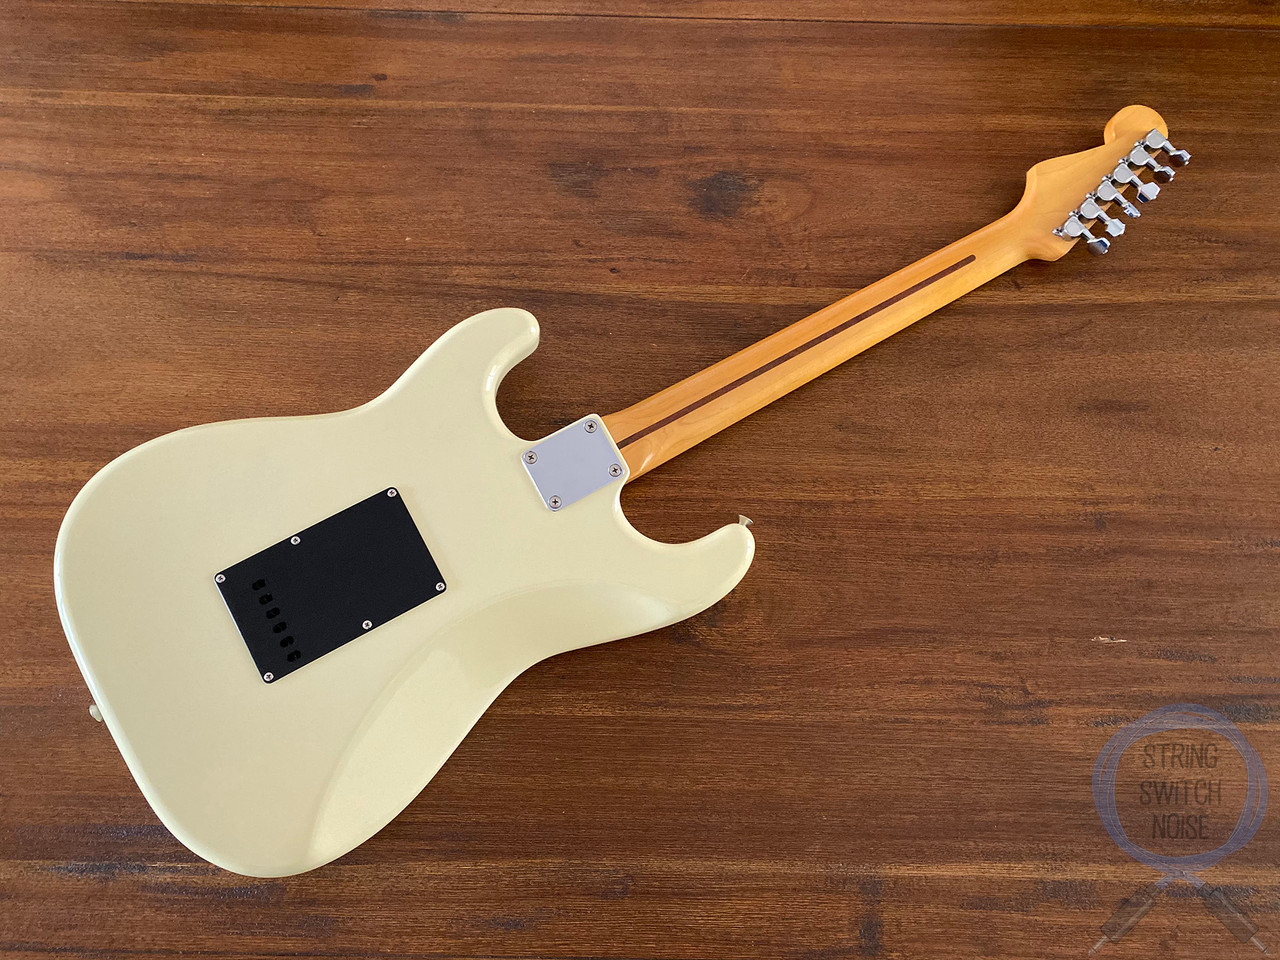 Fender Stratocaster, BOXER, HSS, White, 1984, Excellent Condition